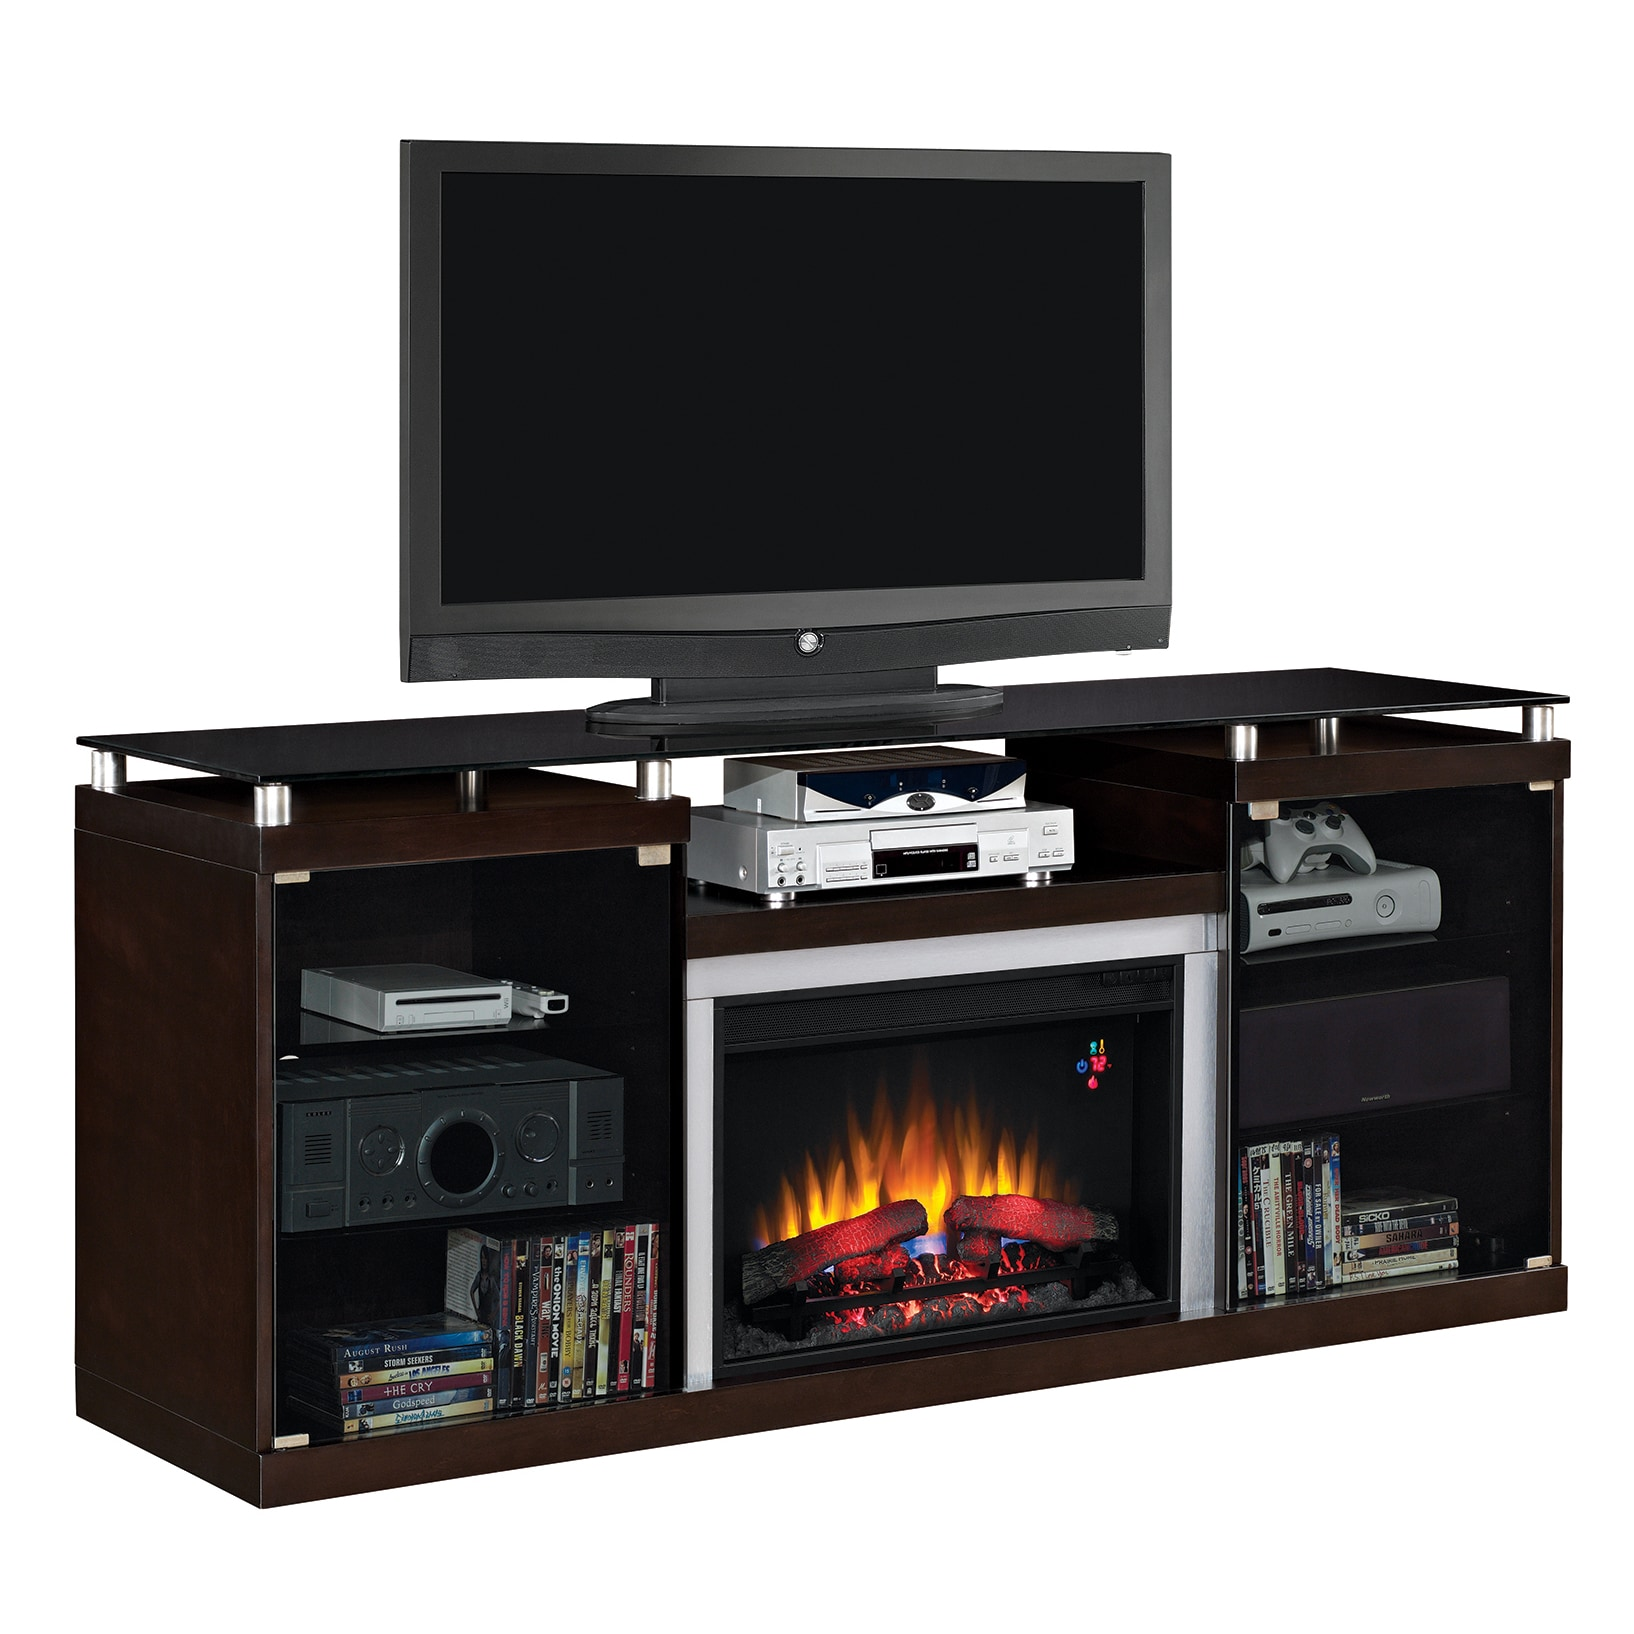 Twin Star Int Albright Tv Stand With 26 Inch Electric Fireplace